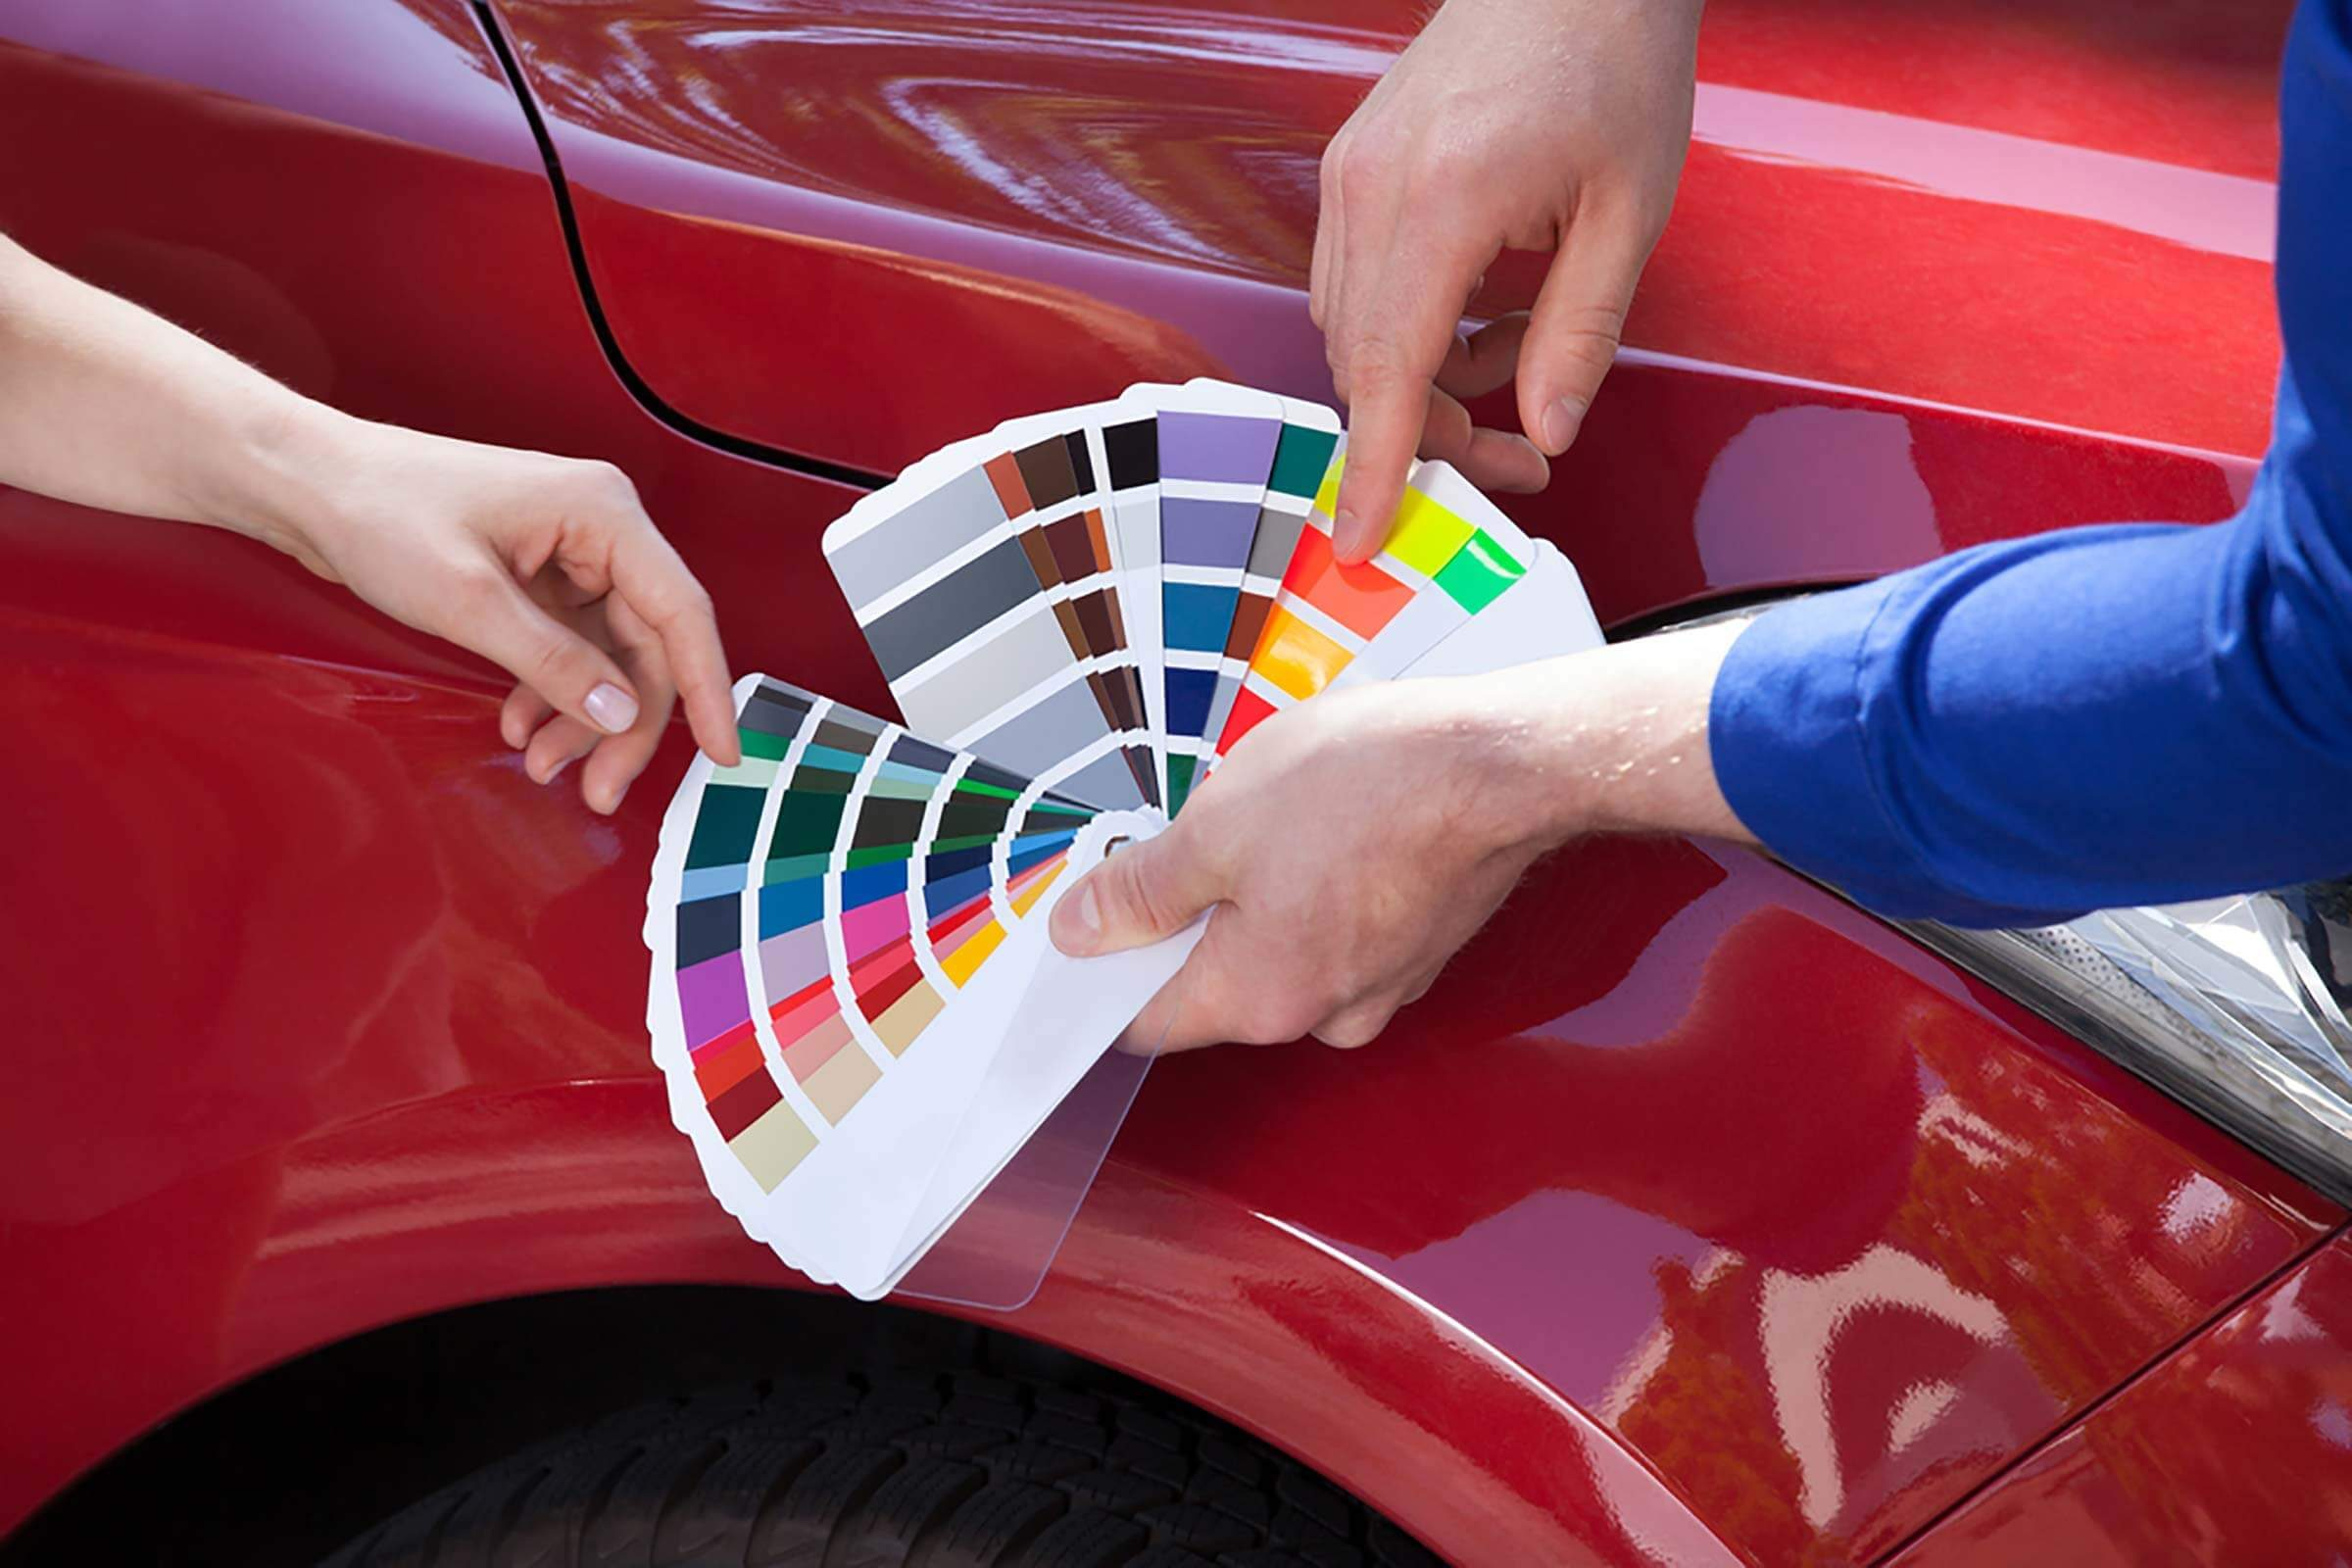 Safest car color accidents - How Your Car Color Affects Your Chances Of Getting Into An Accident Reader S Digest